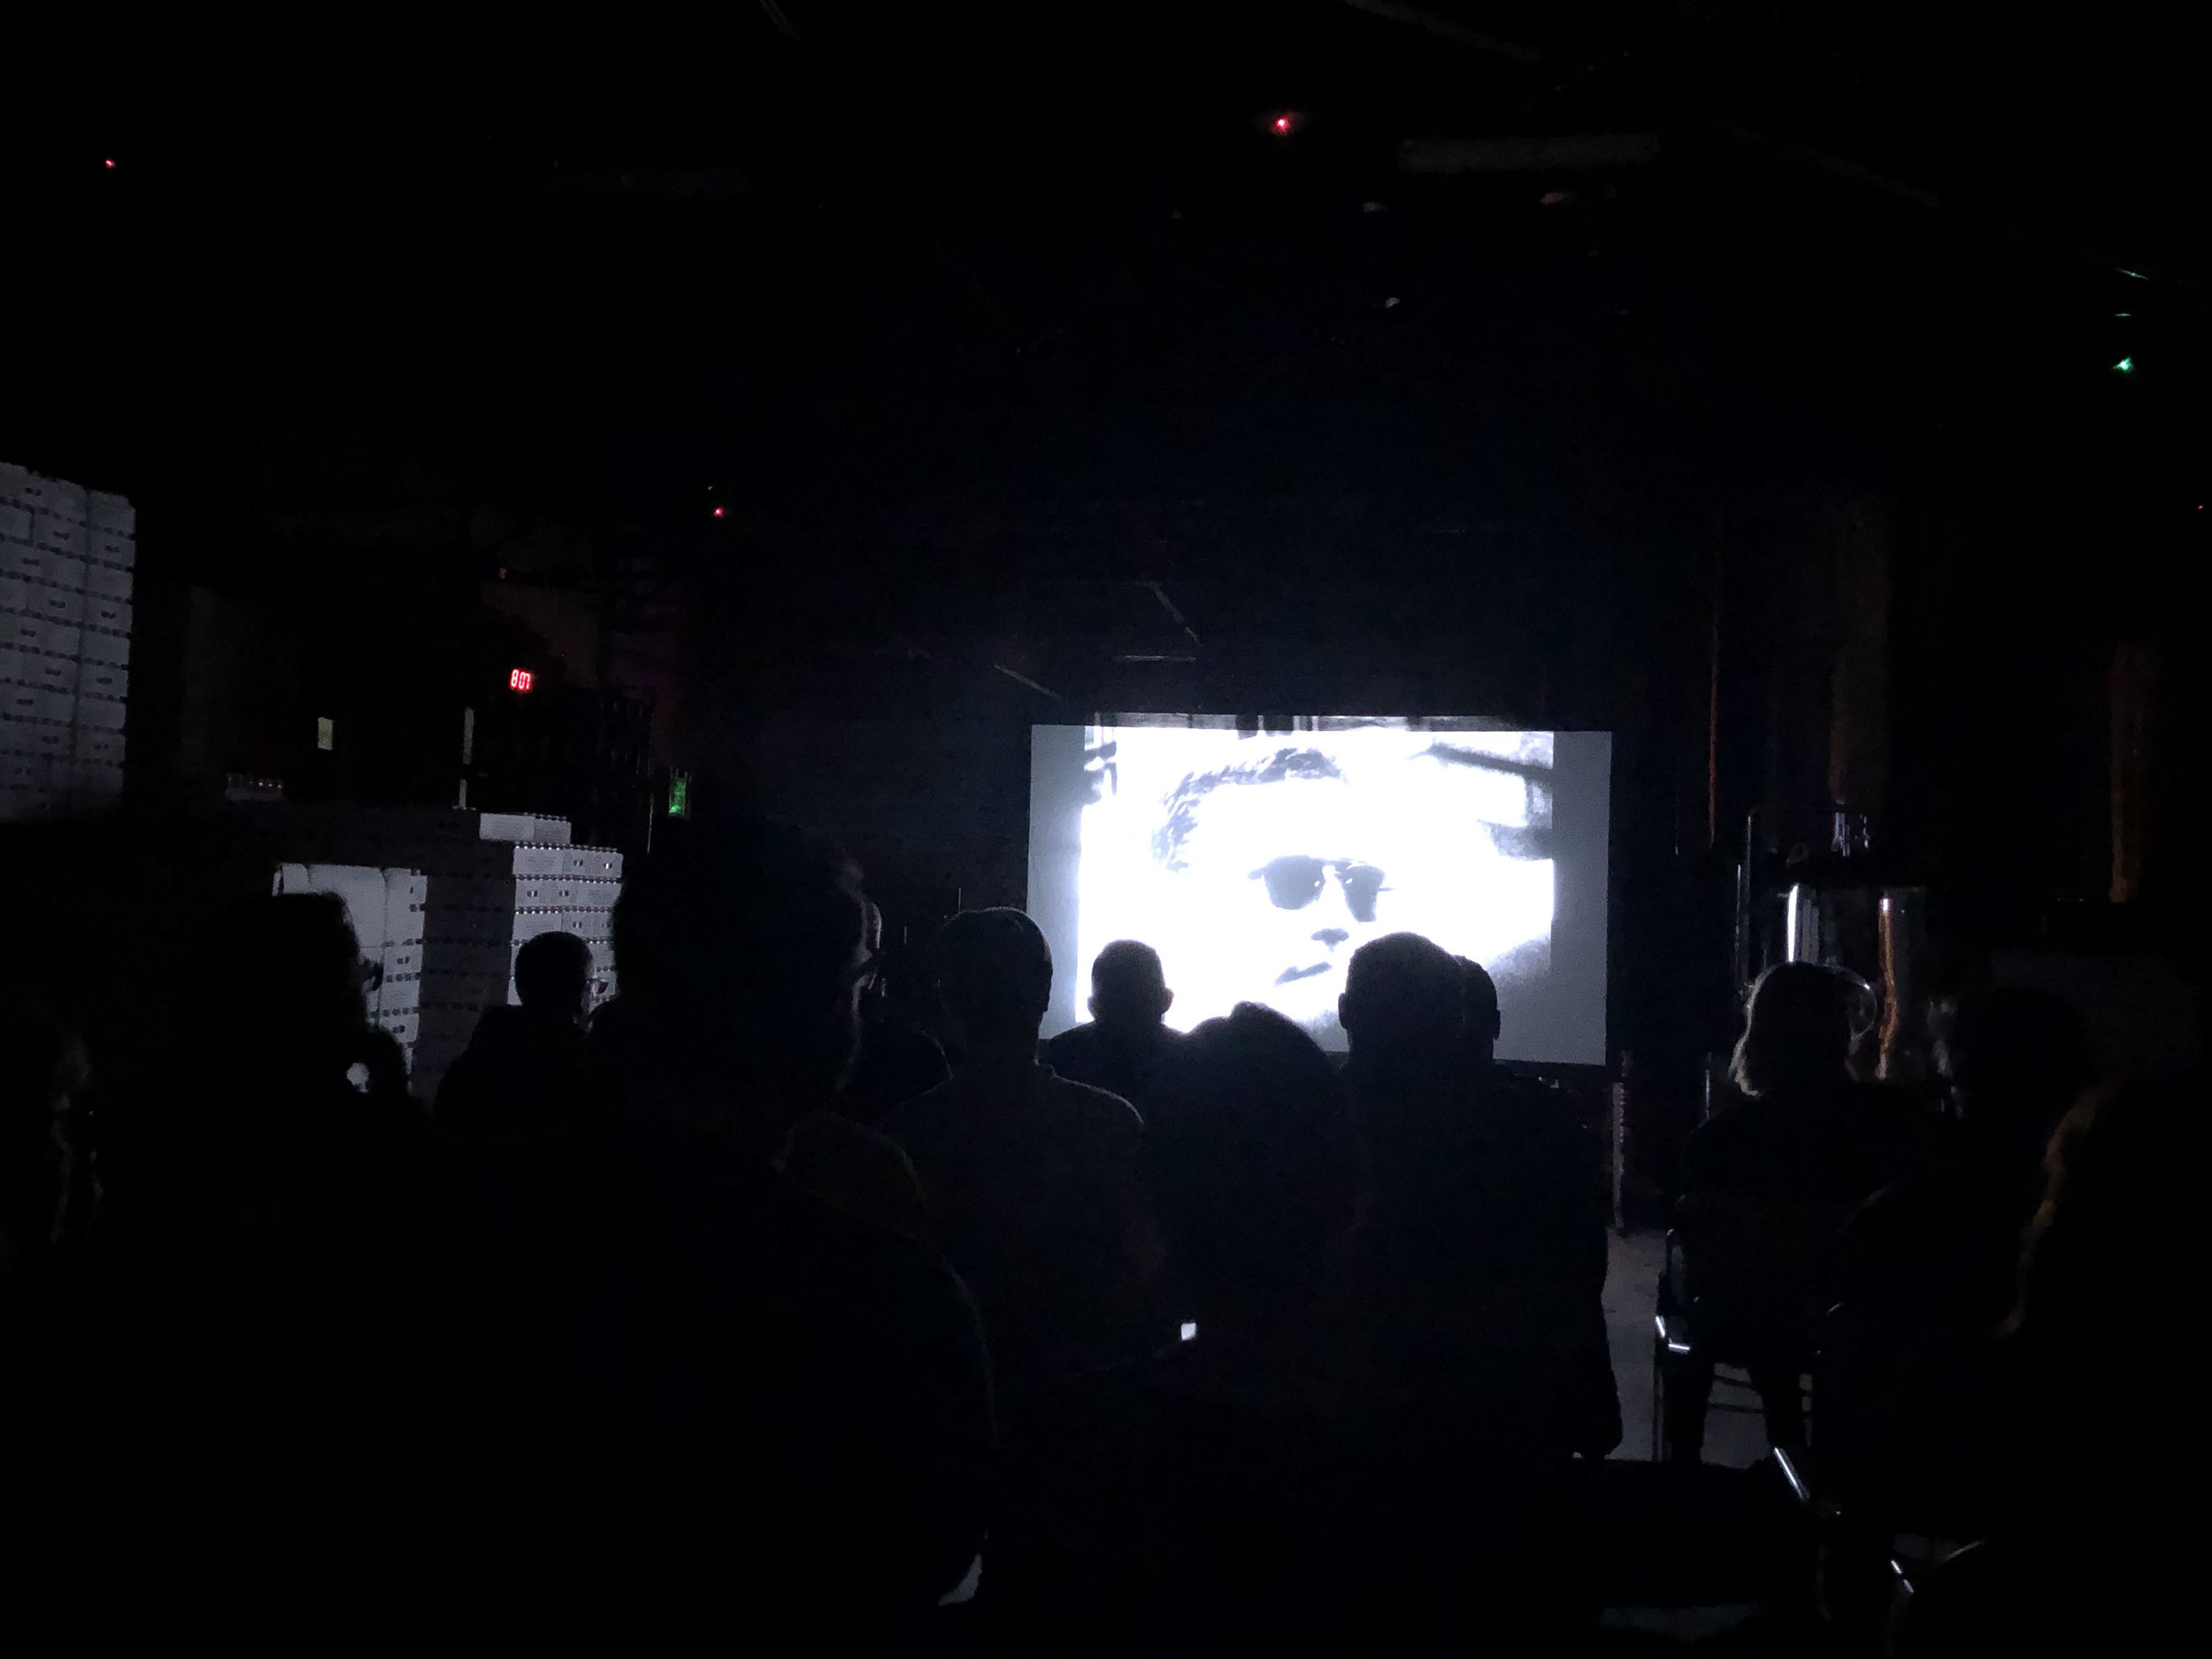 VINEGAR screening with audience